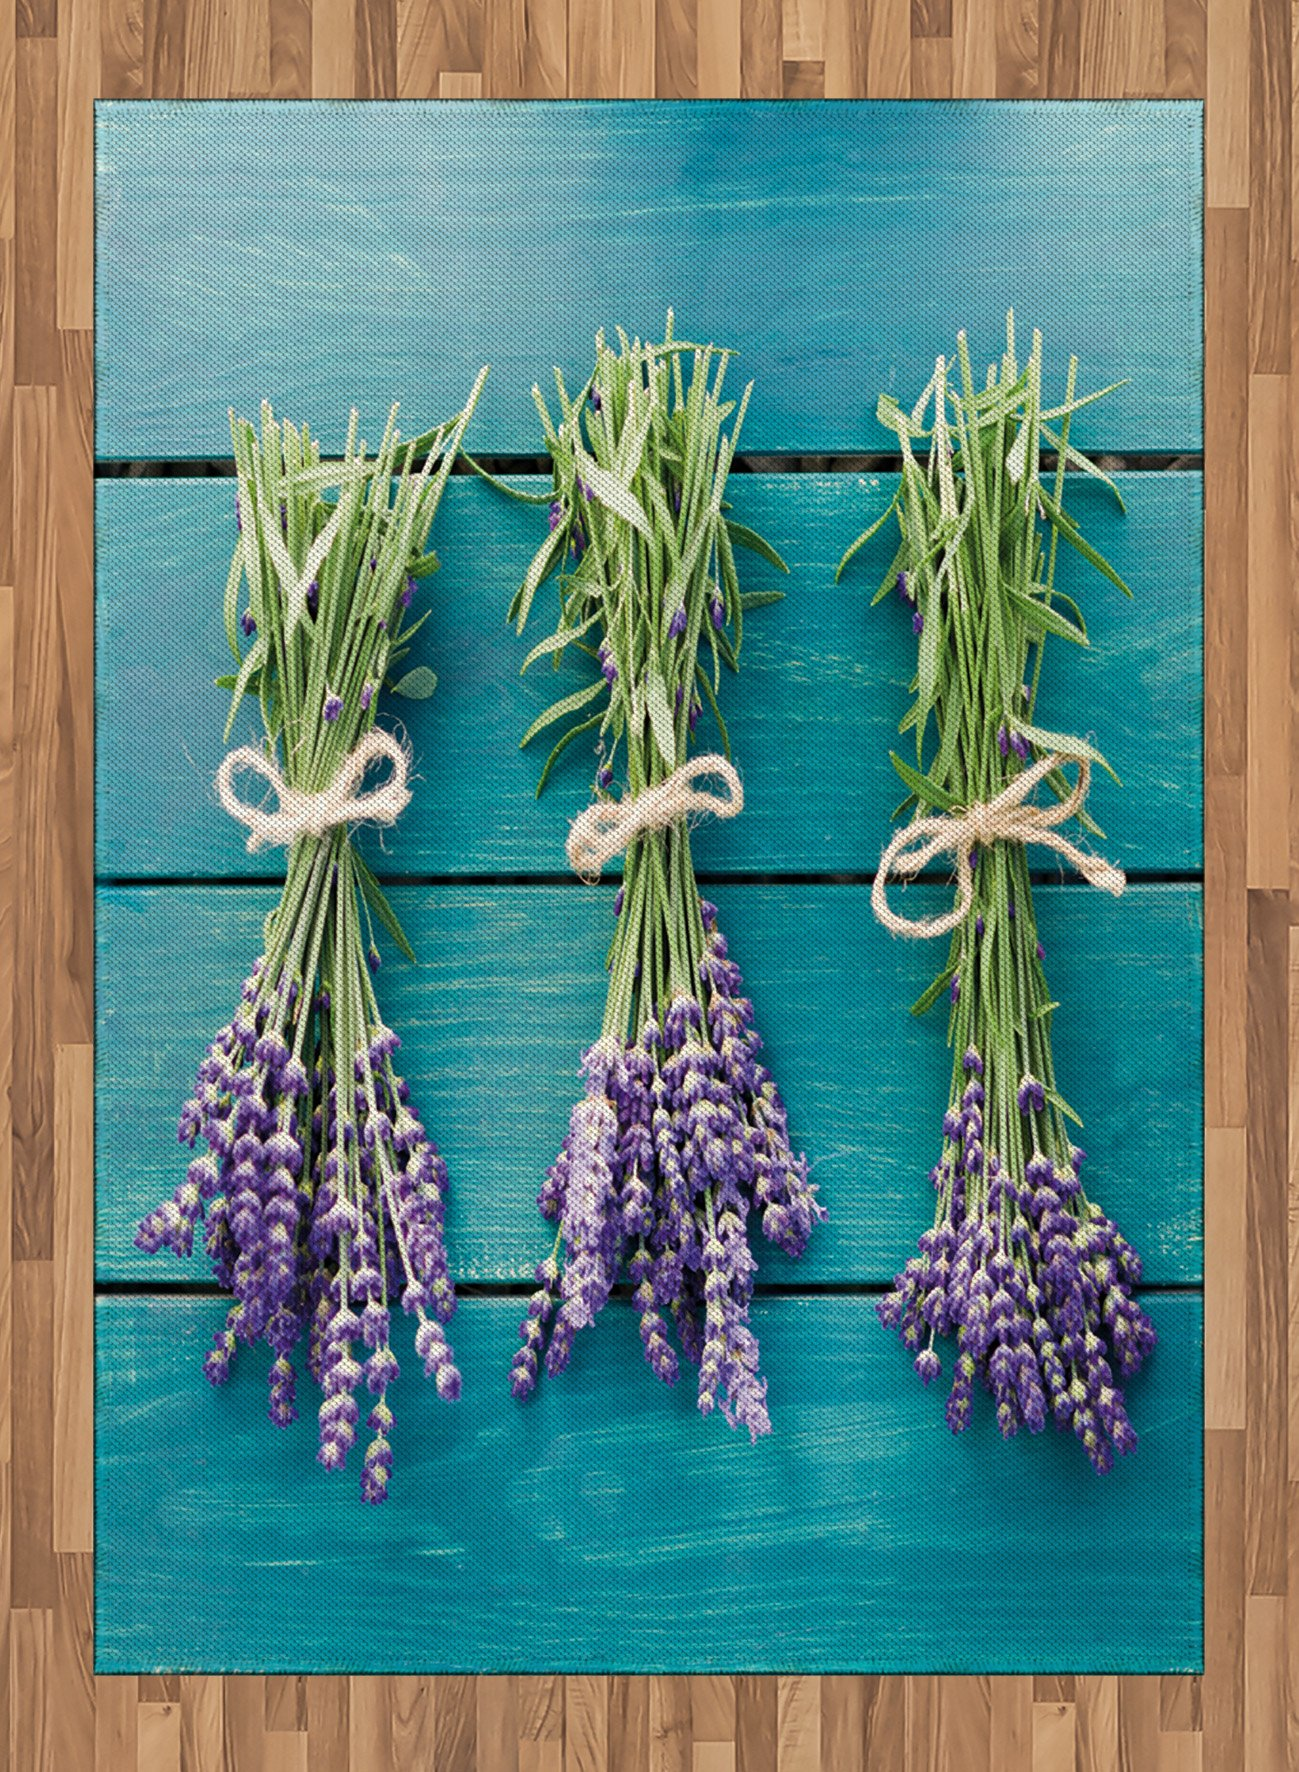 Lavender Area Rug by Lunarable, Fresh Lavender Bouquets on Blue Wooden Planks Rustic Relaxing Spa, Flat Woven Accent Rug for Living Room Bedroom Dining Room, 5.2 x 7.5 FT, Sky Blue Lavender Green by Lunarable (Image #1)